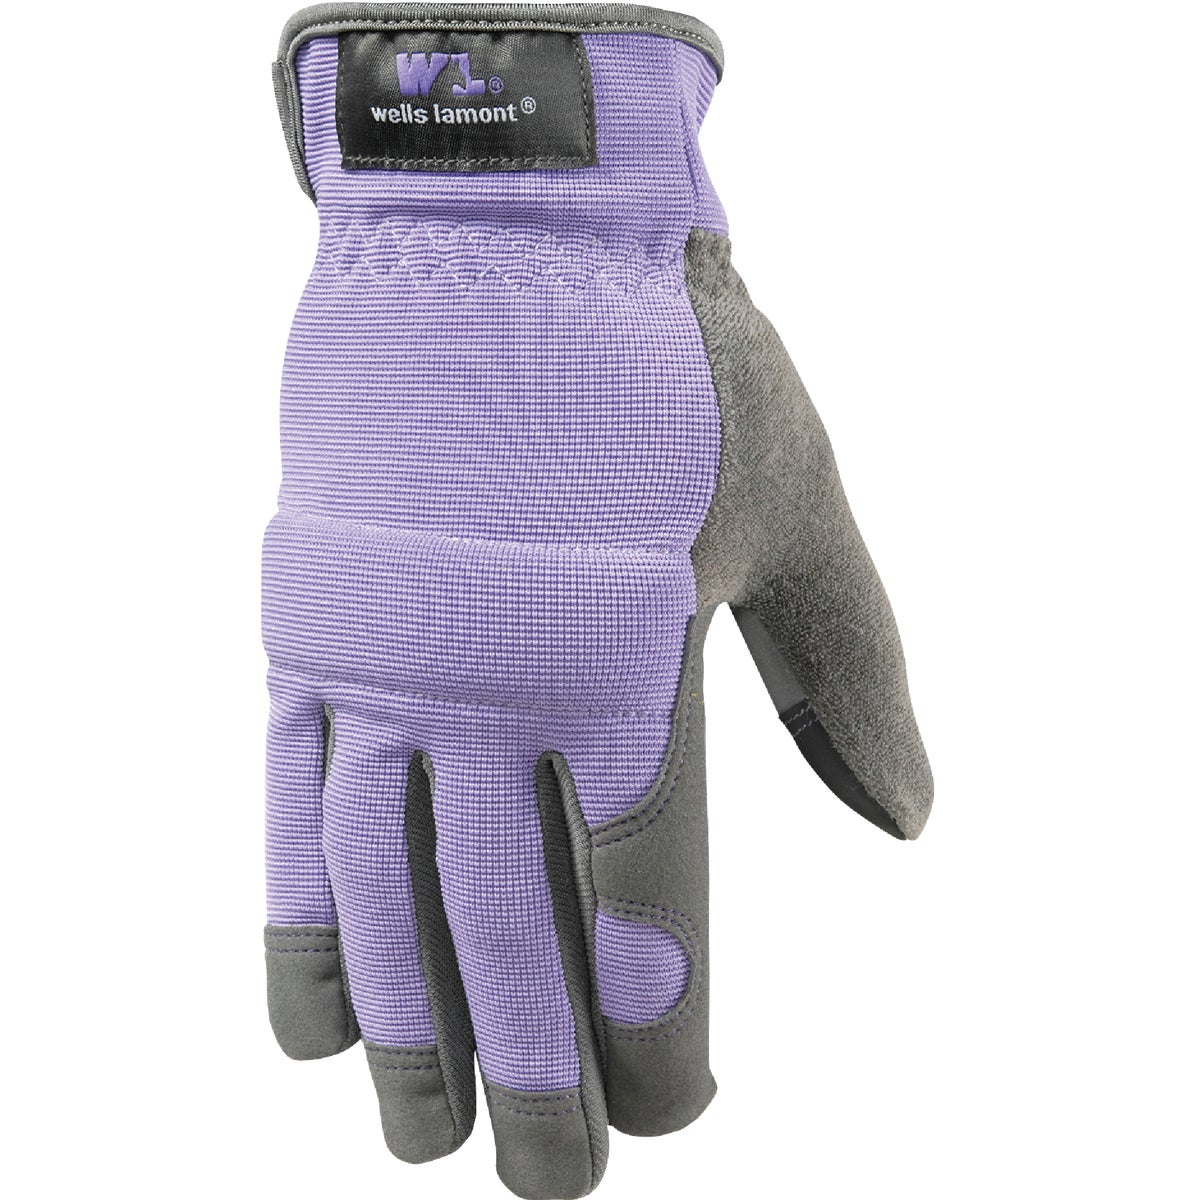 SML SYNTHETIC LTHR GLOVE - 7707S by Wells Lamont